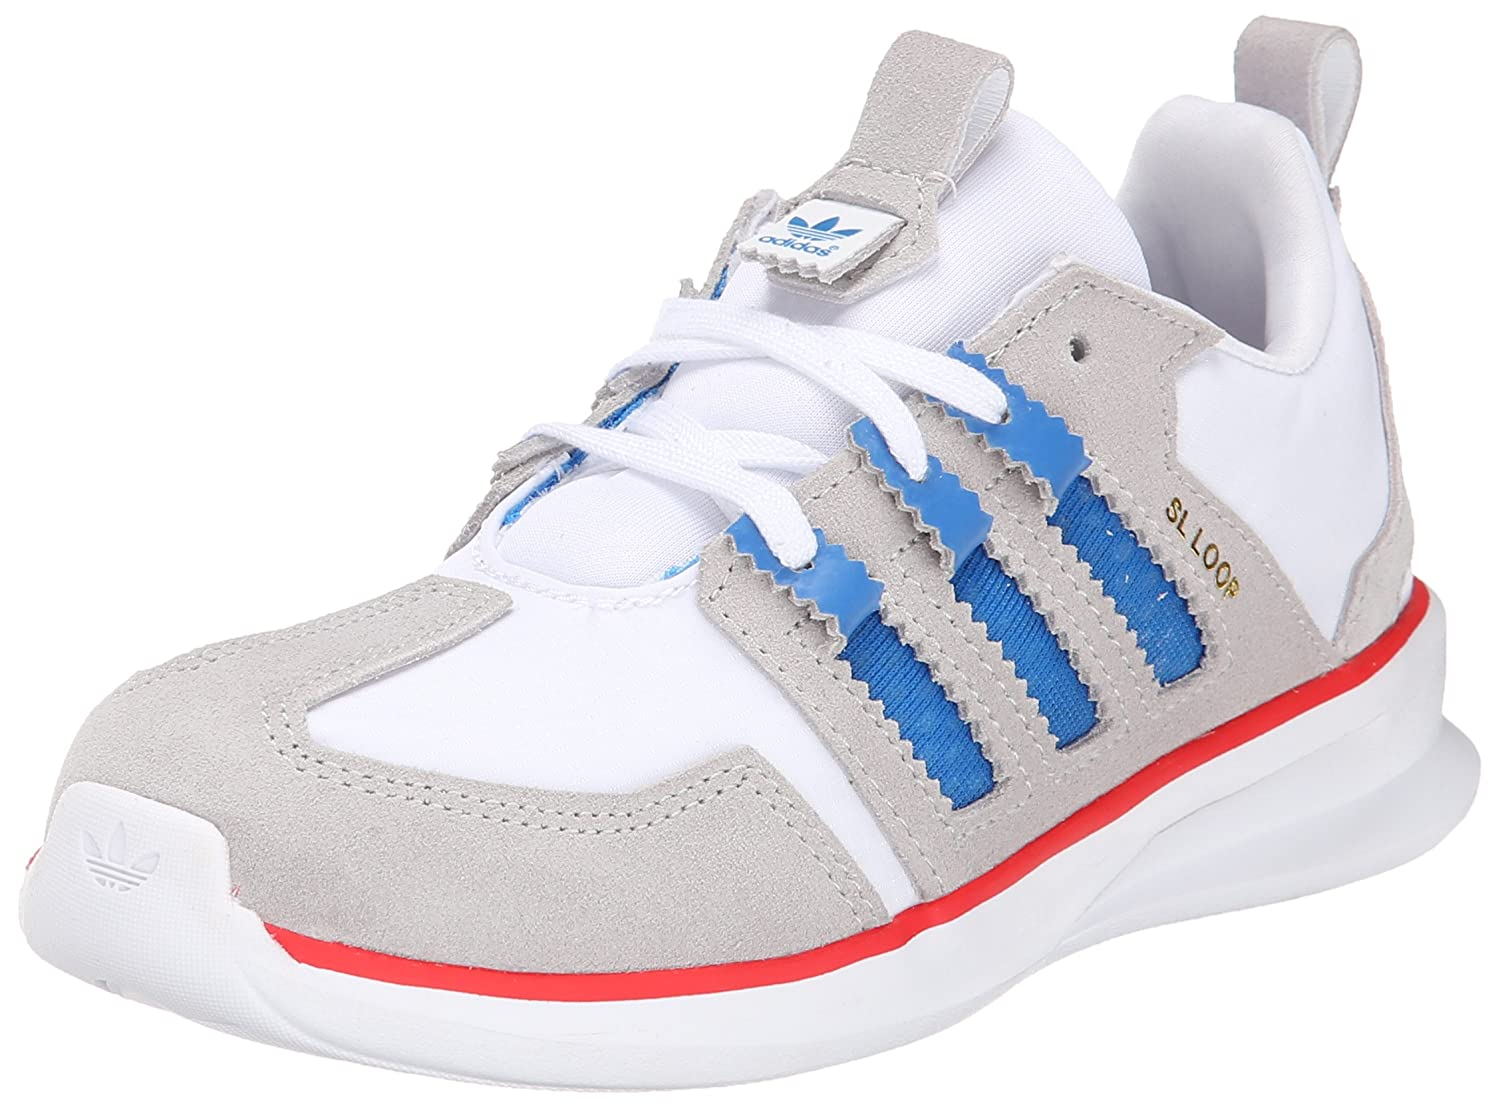 adidas Originals SL Loop Runner C Running Shoe adidas originals superstar stormtrooper cf c basketball shoe little kid